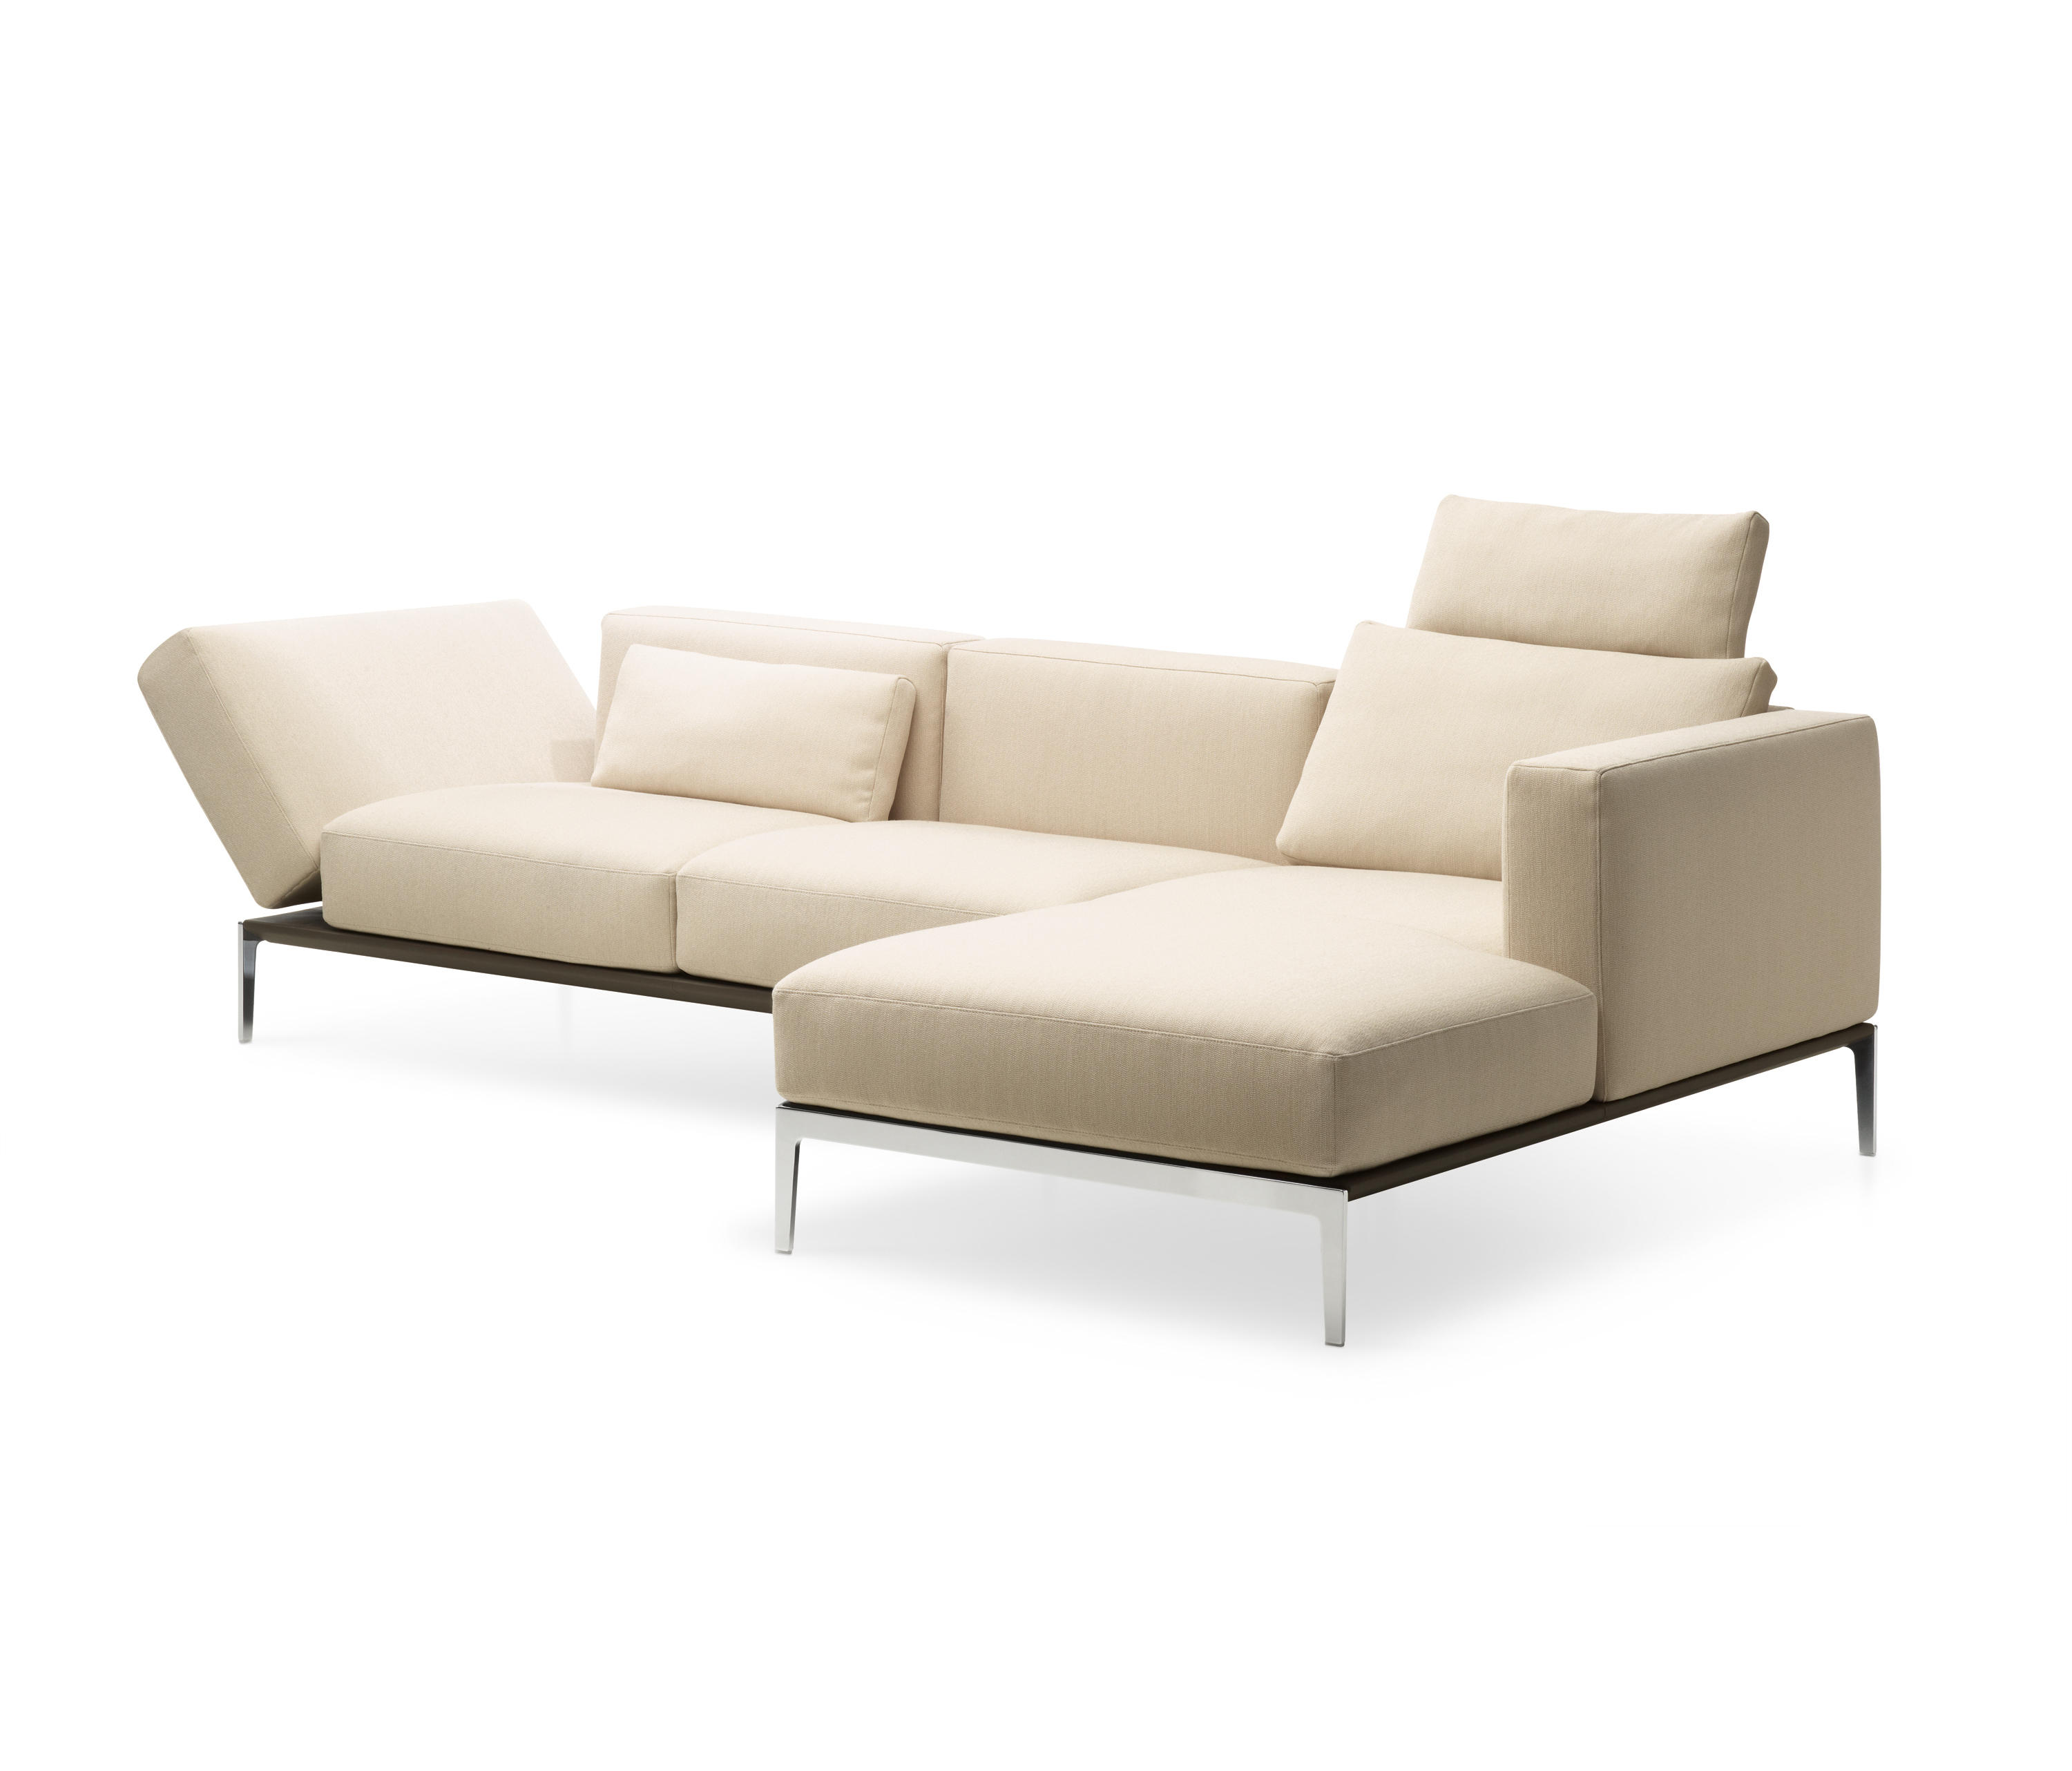 Sofa King Easy: 2 Er Sofa. Trendy Casa Padrino Baroque Seater Sofa King